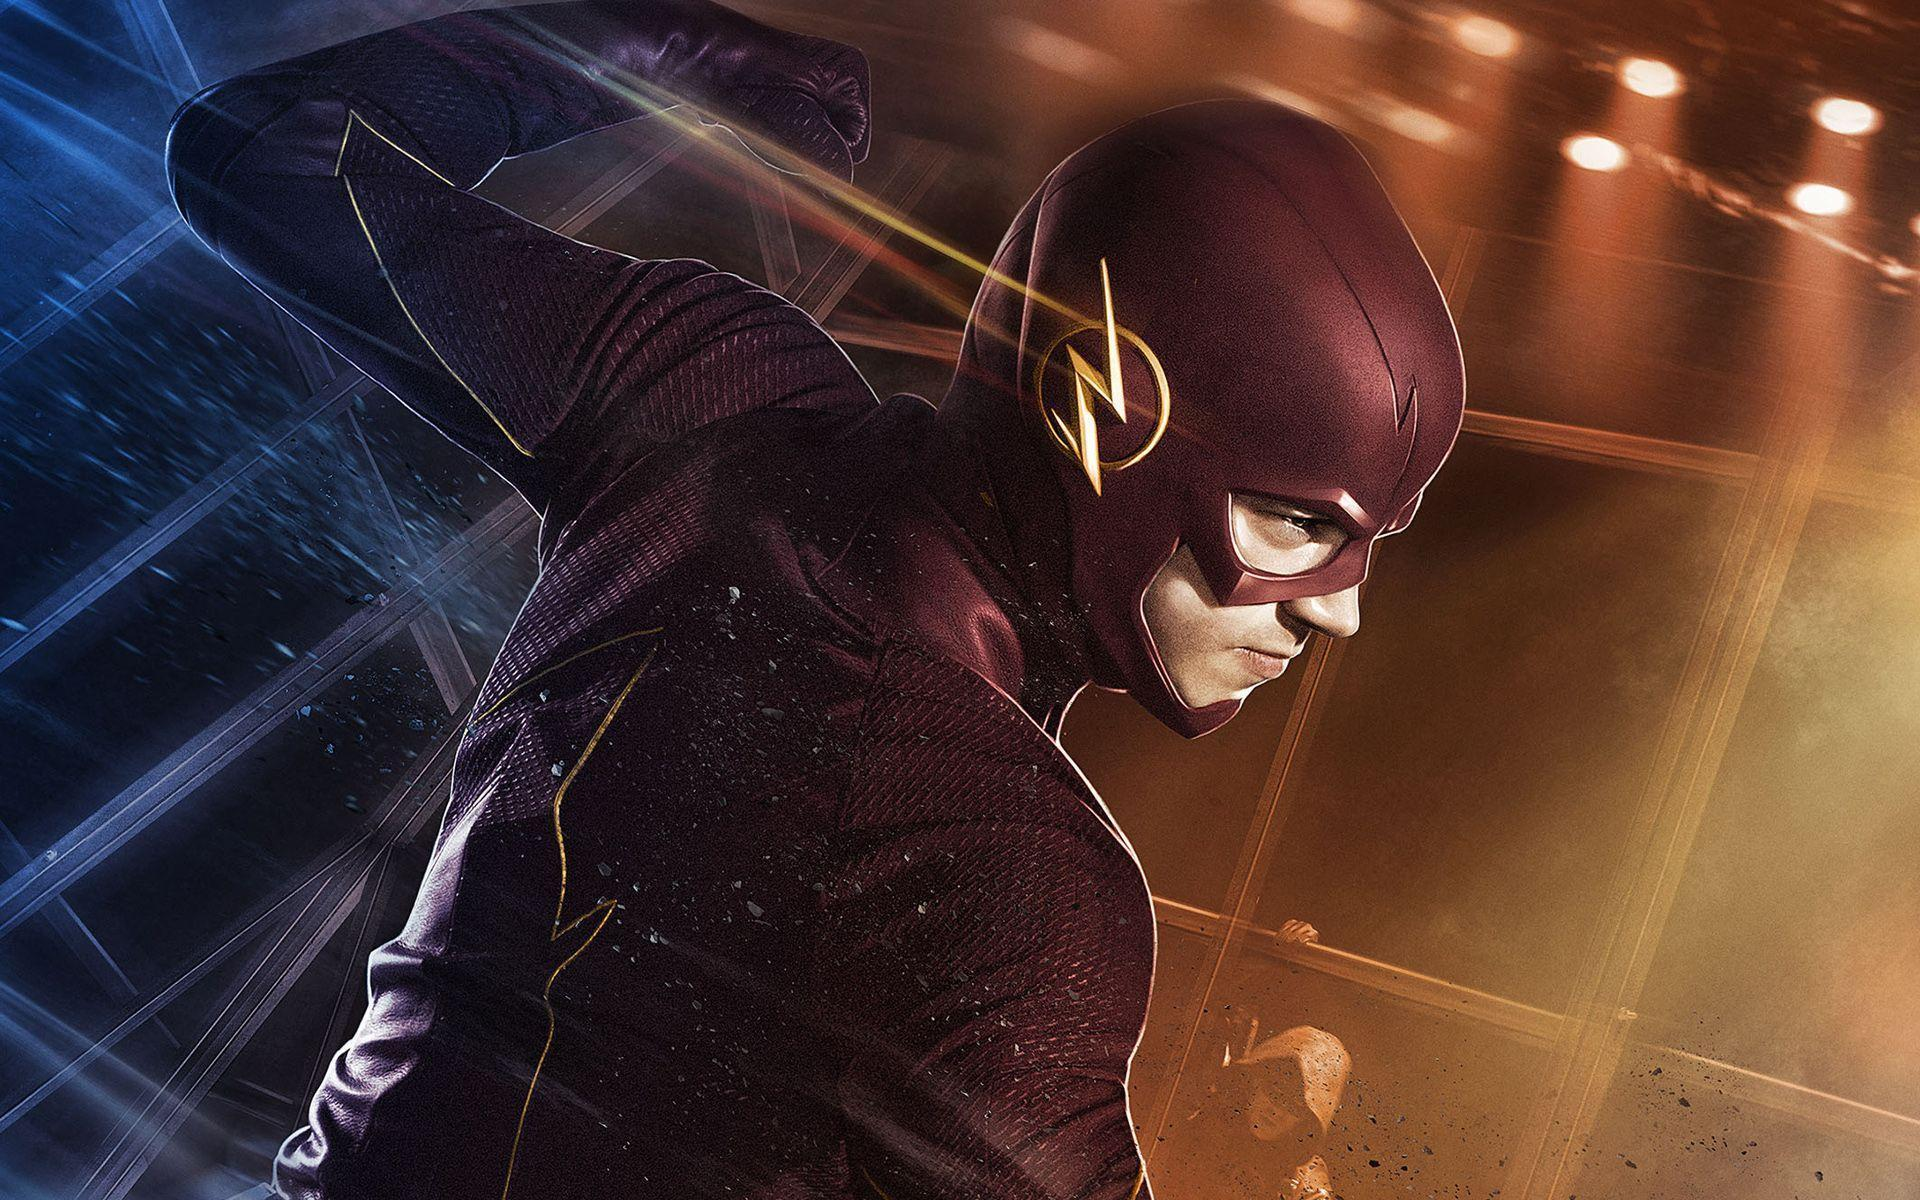 Grant Gustin as Barry Allen The Flash Wallpapers